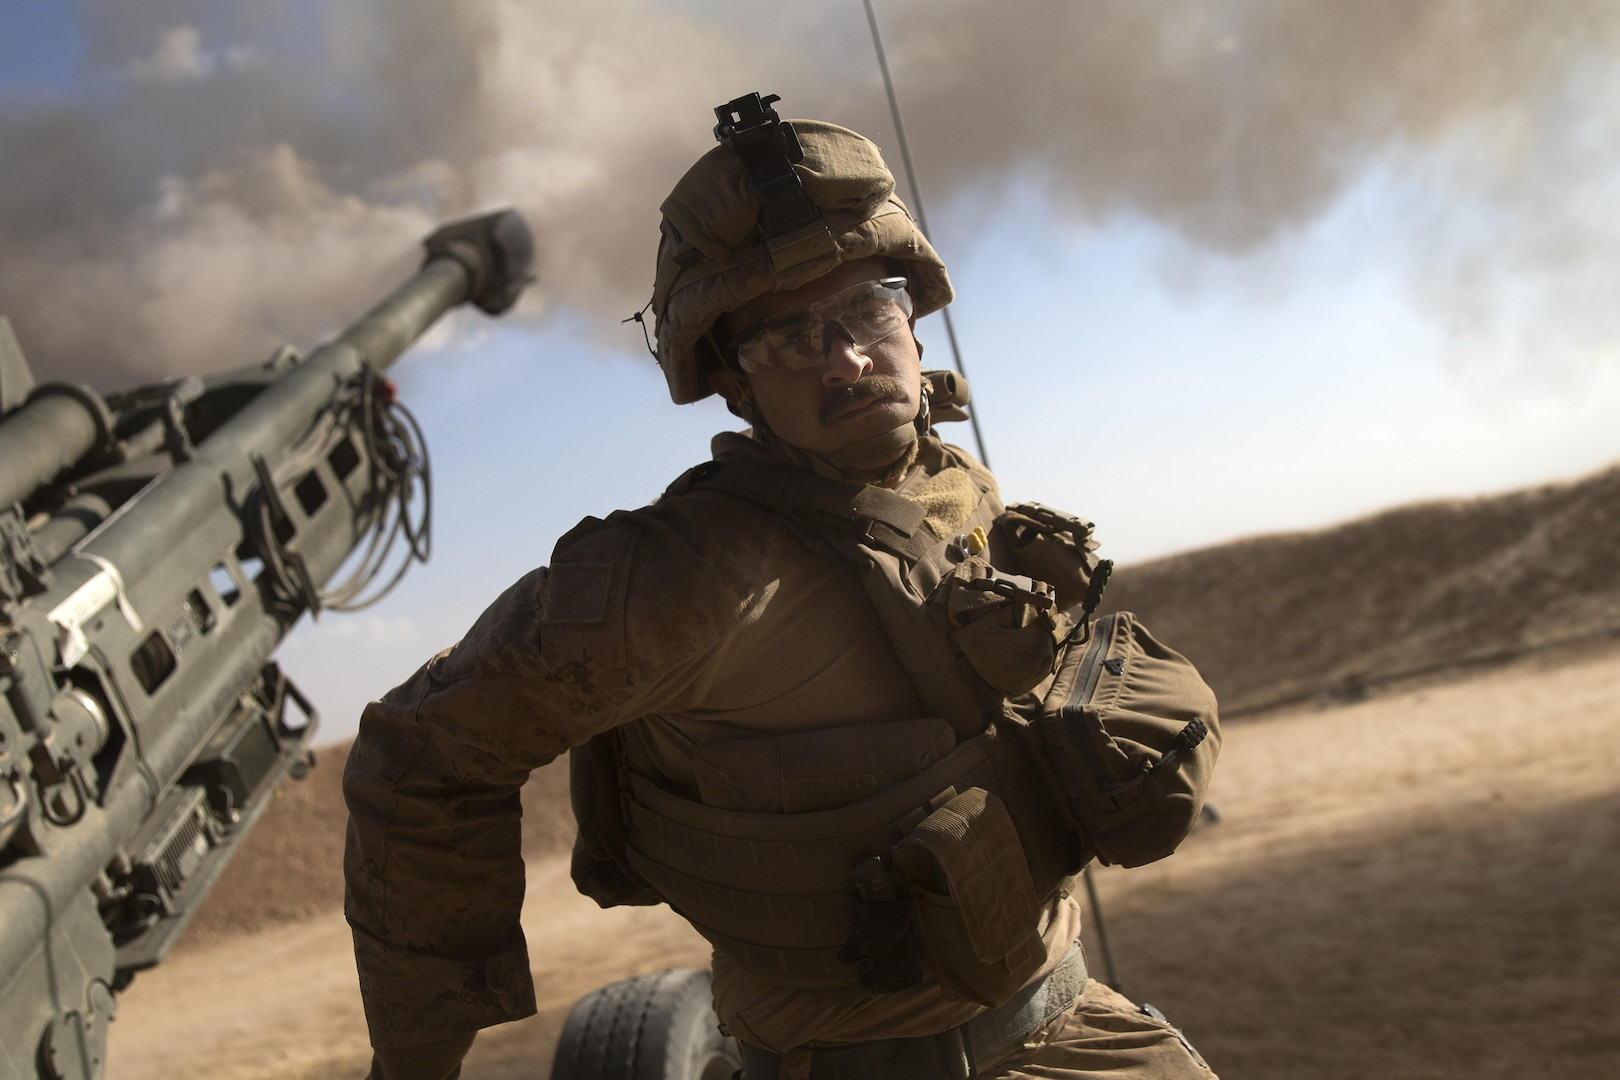 A U.S. Marine fires an M777-A2 Howitzer in Syria, June 1, 2017. The Marines had been conducting 24-hour all-weather fire support for the coalition's local partners, the Syrian Democratic Forces, as part of Combined Joint Task Force Operation Inherent Resolve. Marine Corps photo by Sgt. Matthew Callahan